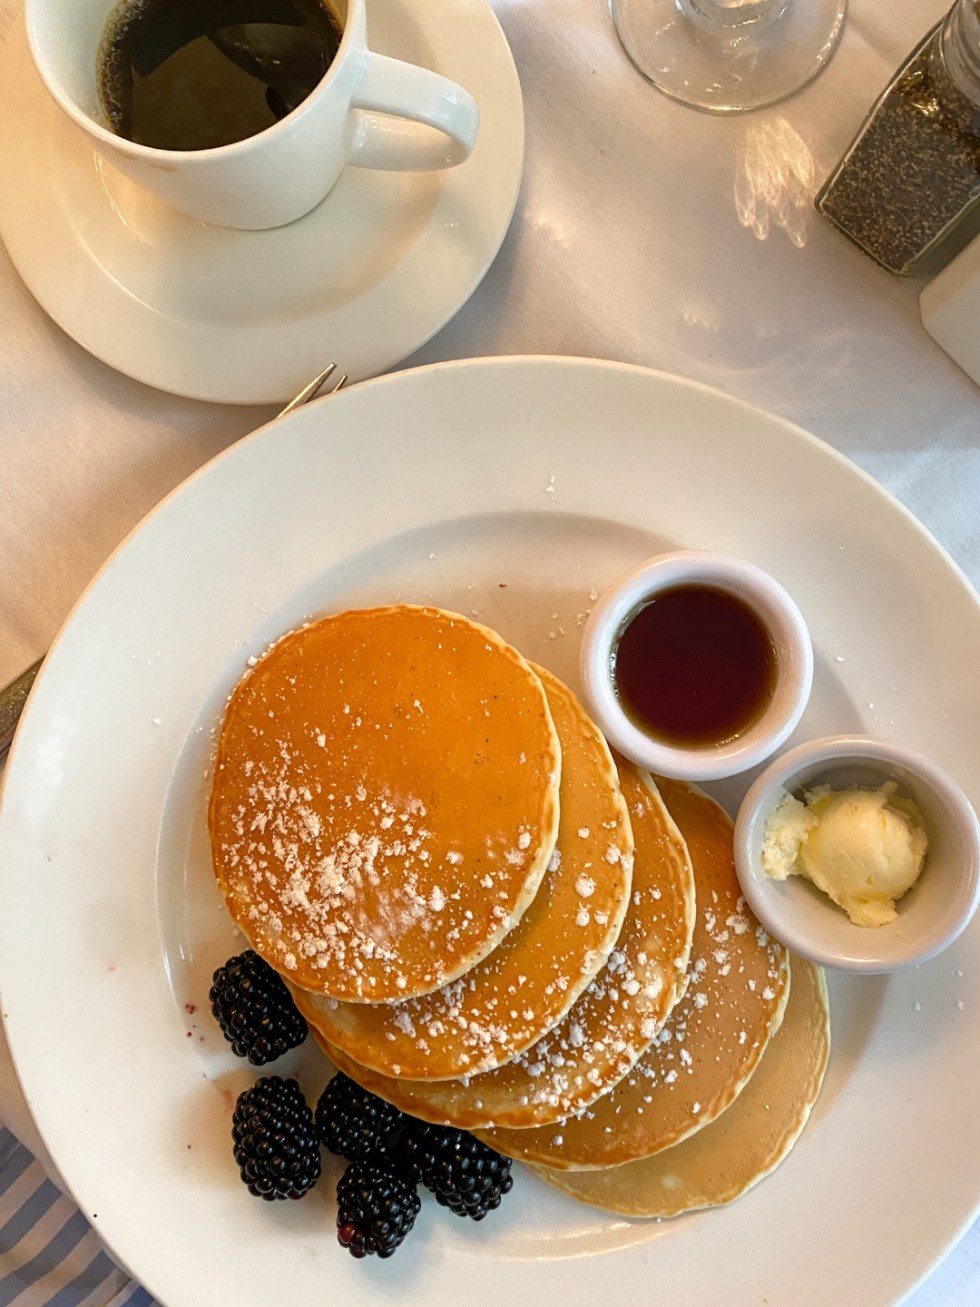 NYC Summer Weekend: Things to Do in NYC in the Summer - I'm Fixin' To - @imfixintoblog   NYC Summer Weekend by popular NC travel blog, I'm Fixin' To: image of pancakes and blackberries.